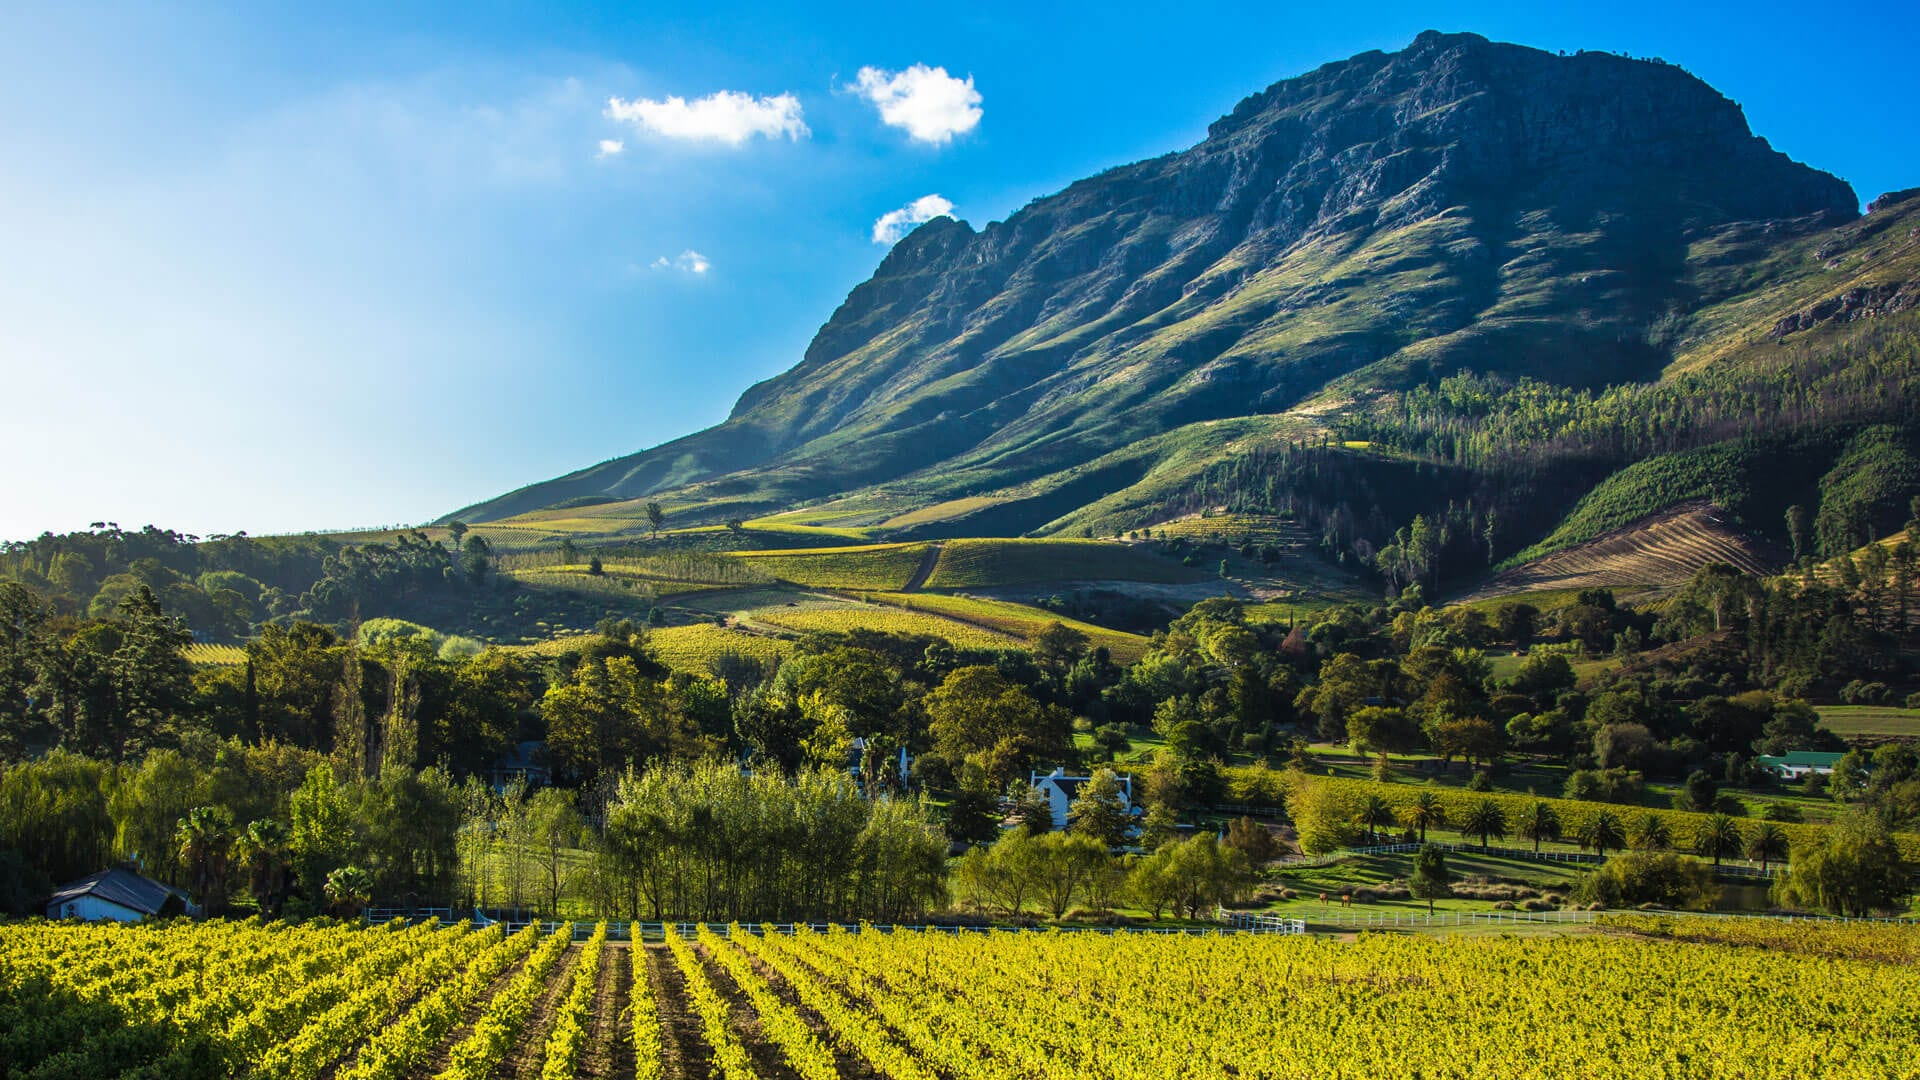 https://www.andbeyond.com/wp-content/uploads/sites/5/cape-winelands-south-africa.jpg